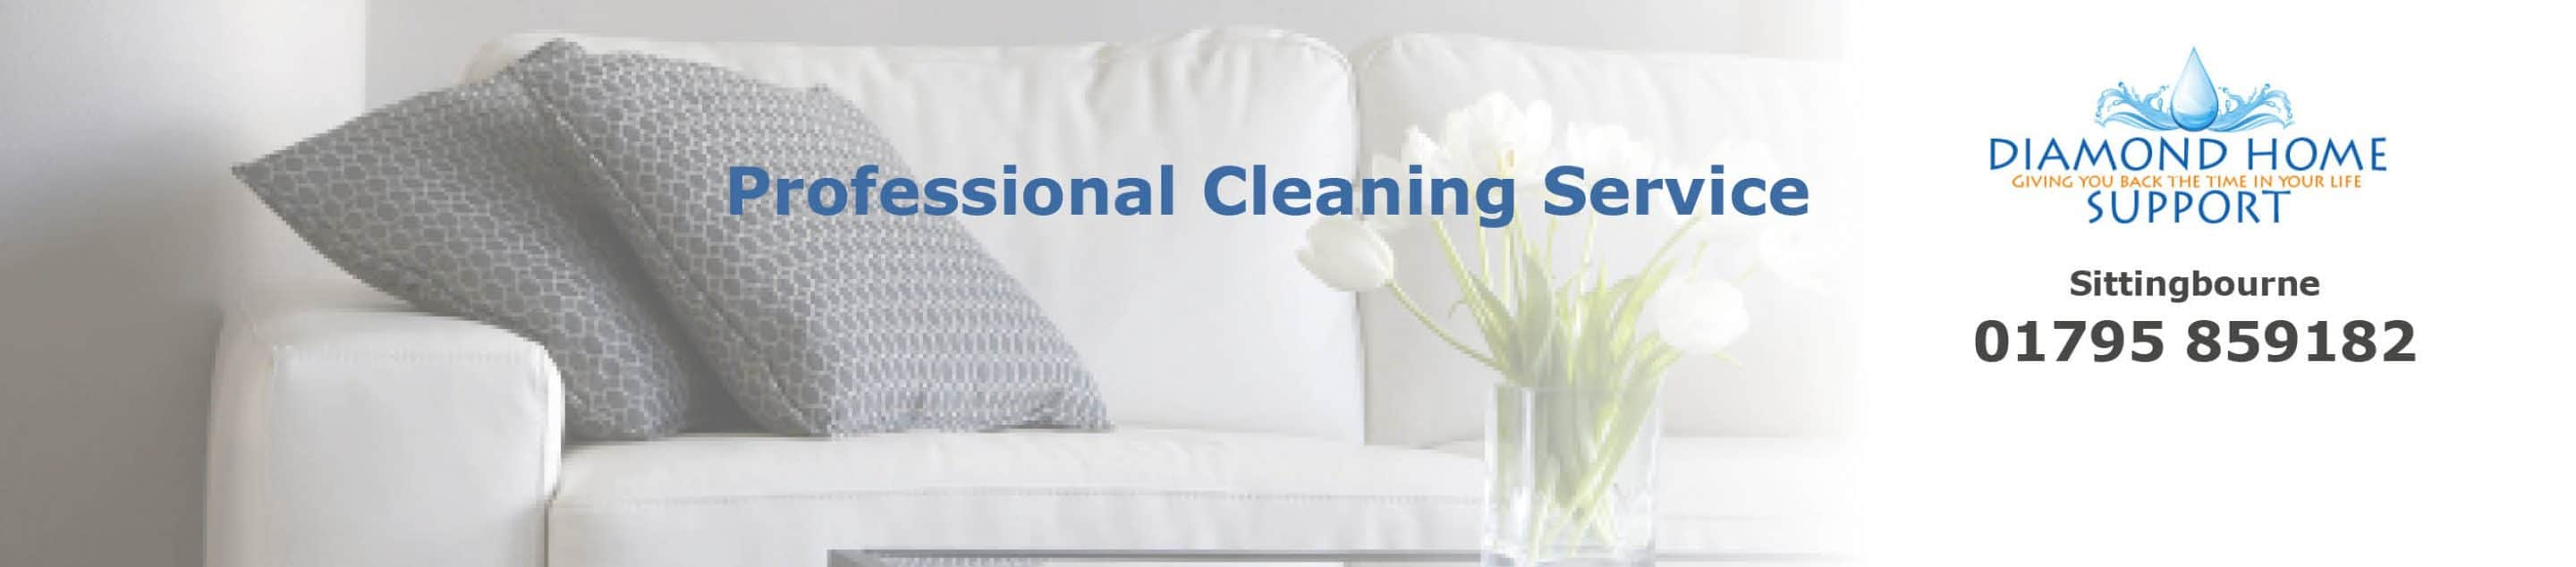 Cleaners in Sittingbourne